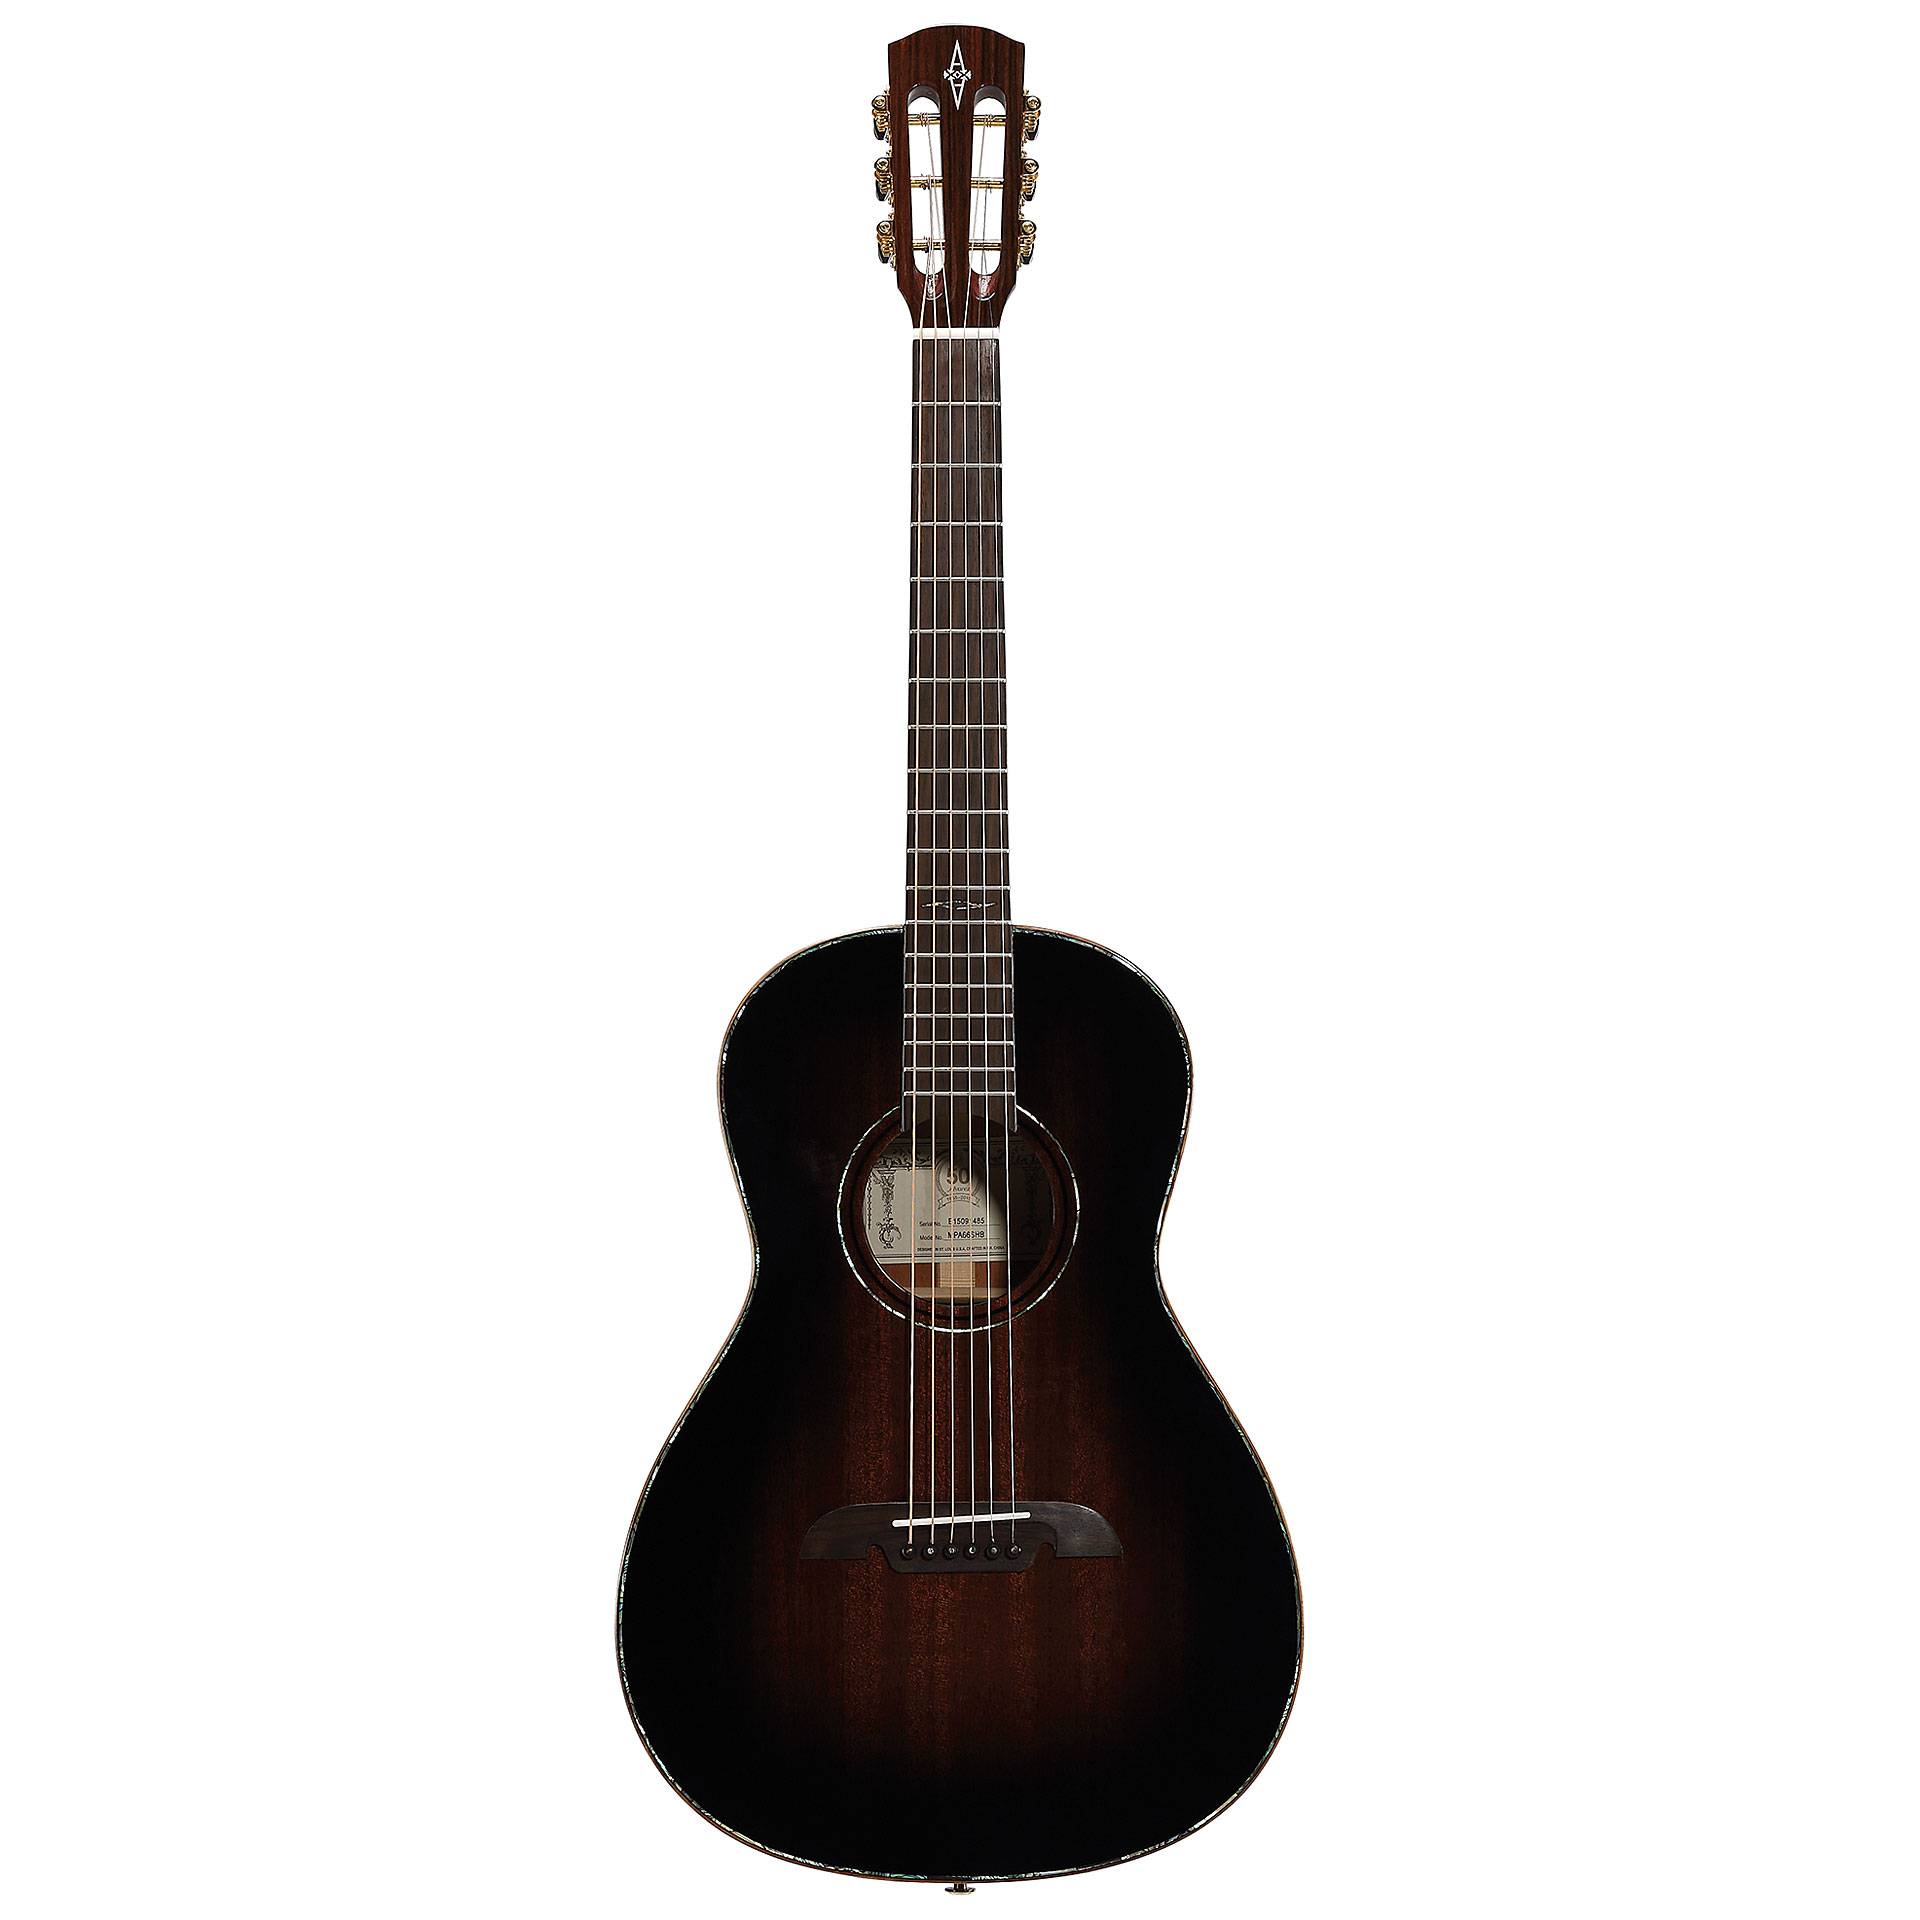 alvarez mpa66shb parlor acoustic guitar musik produktiv. Black Bedroom Furniture Sets. Home Design Ideas